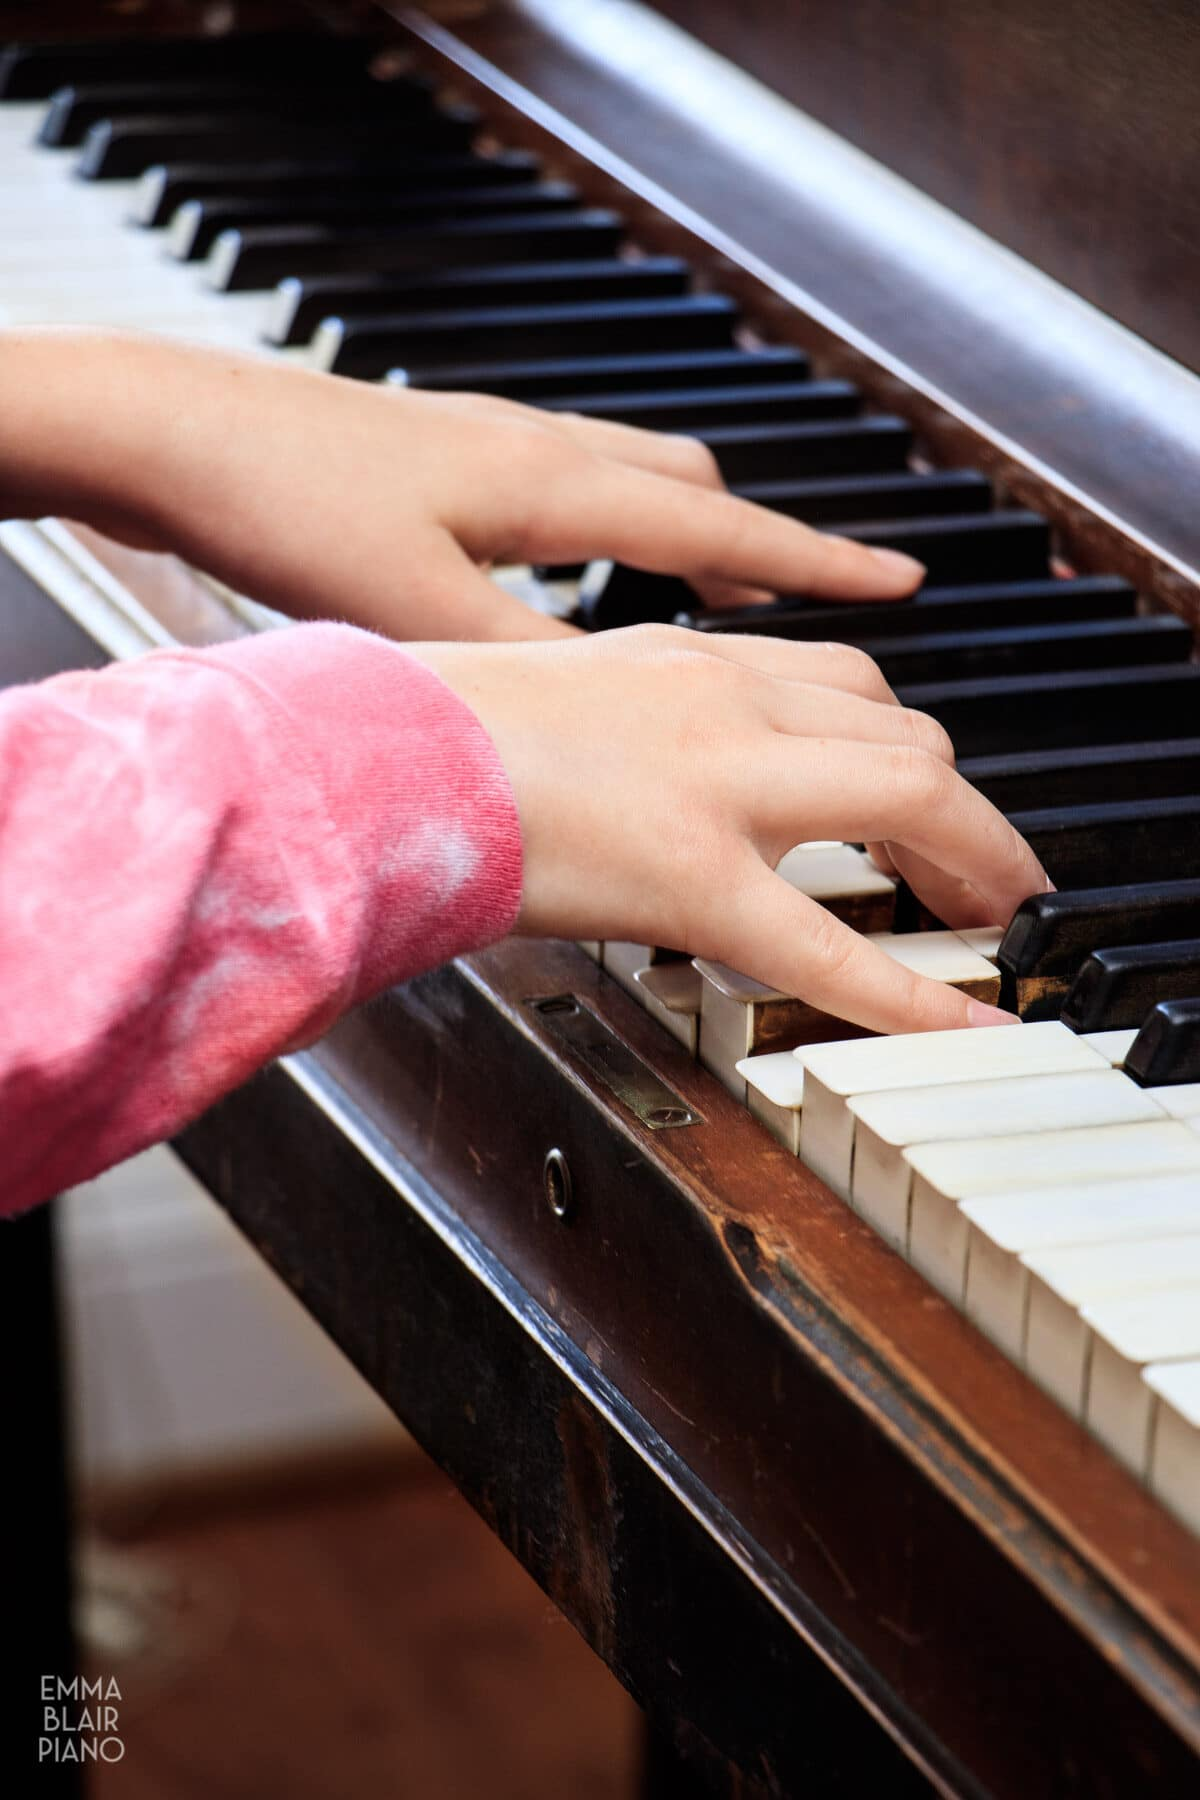 closeup of a young girl's hands playing the piano